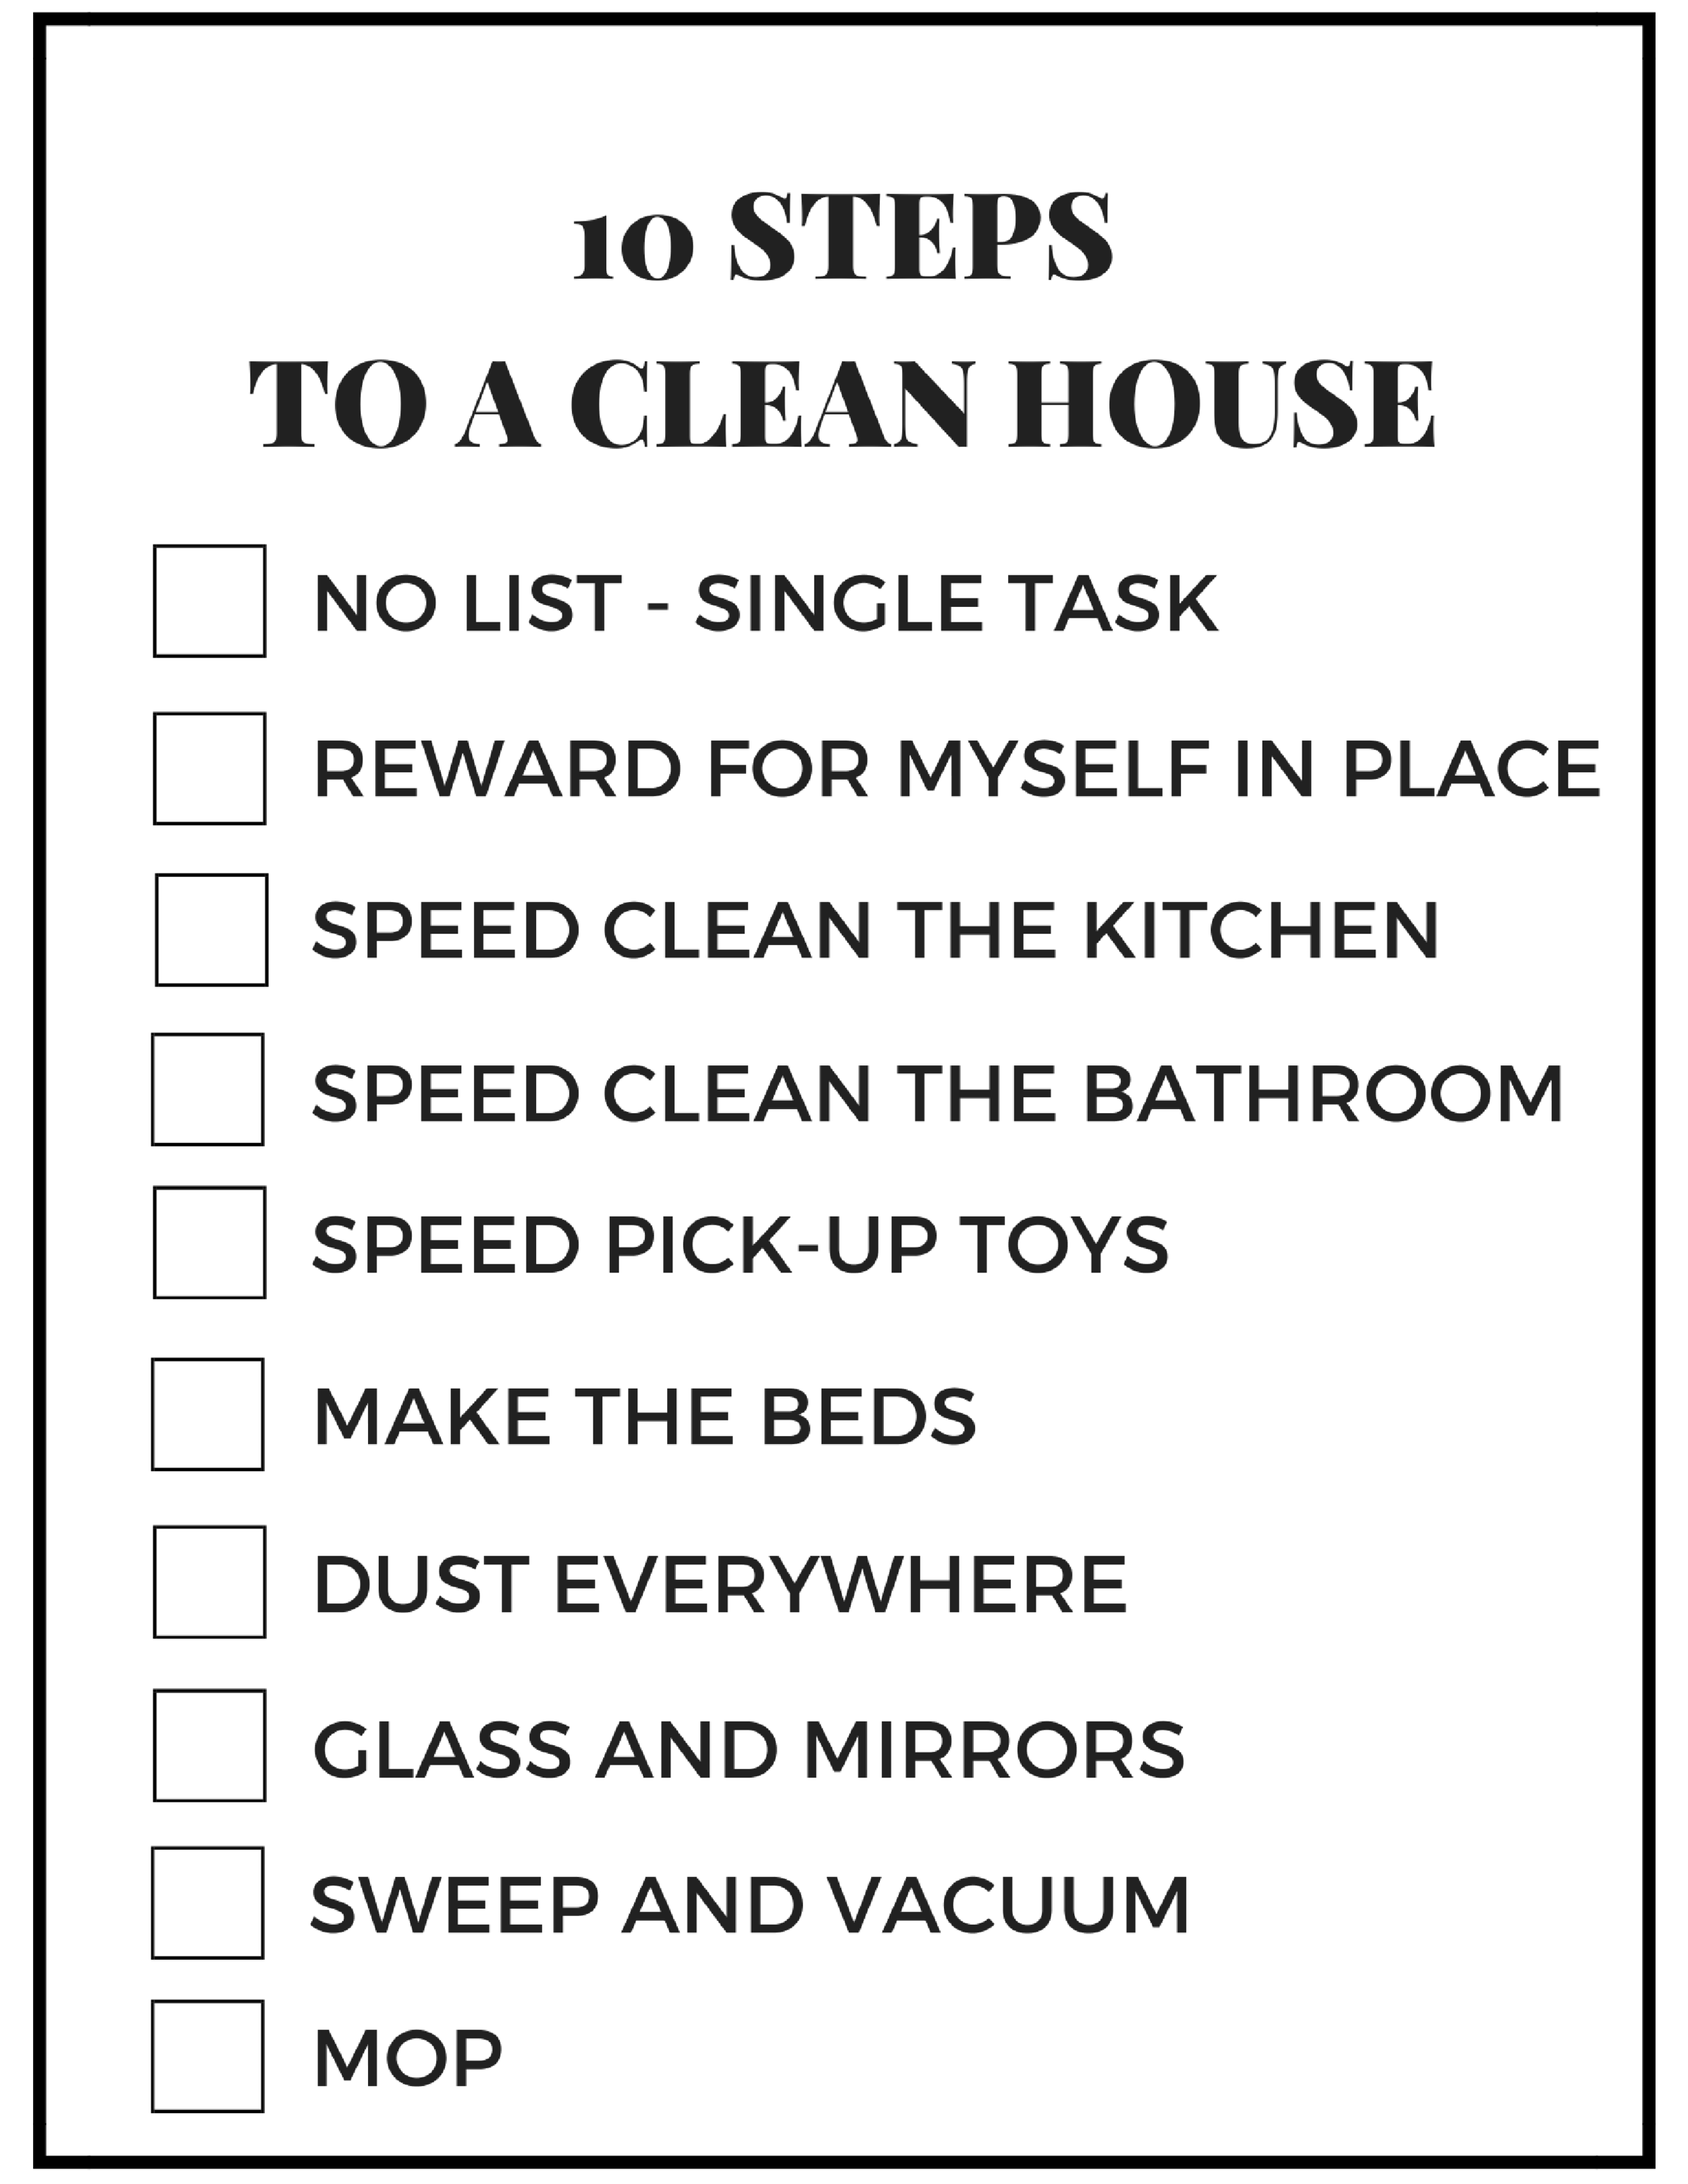 10steps-to-a-clean-house.png